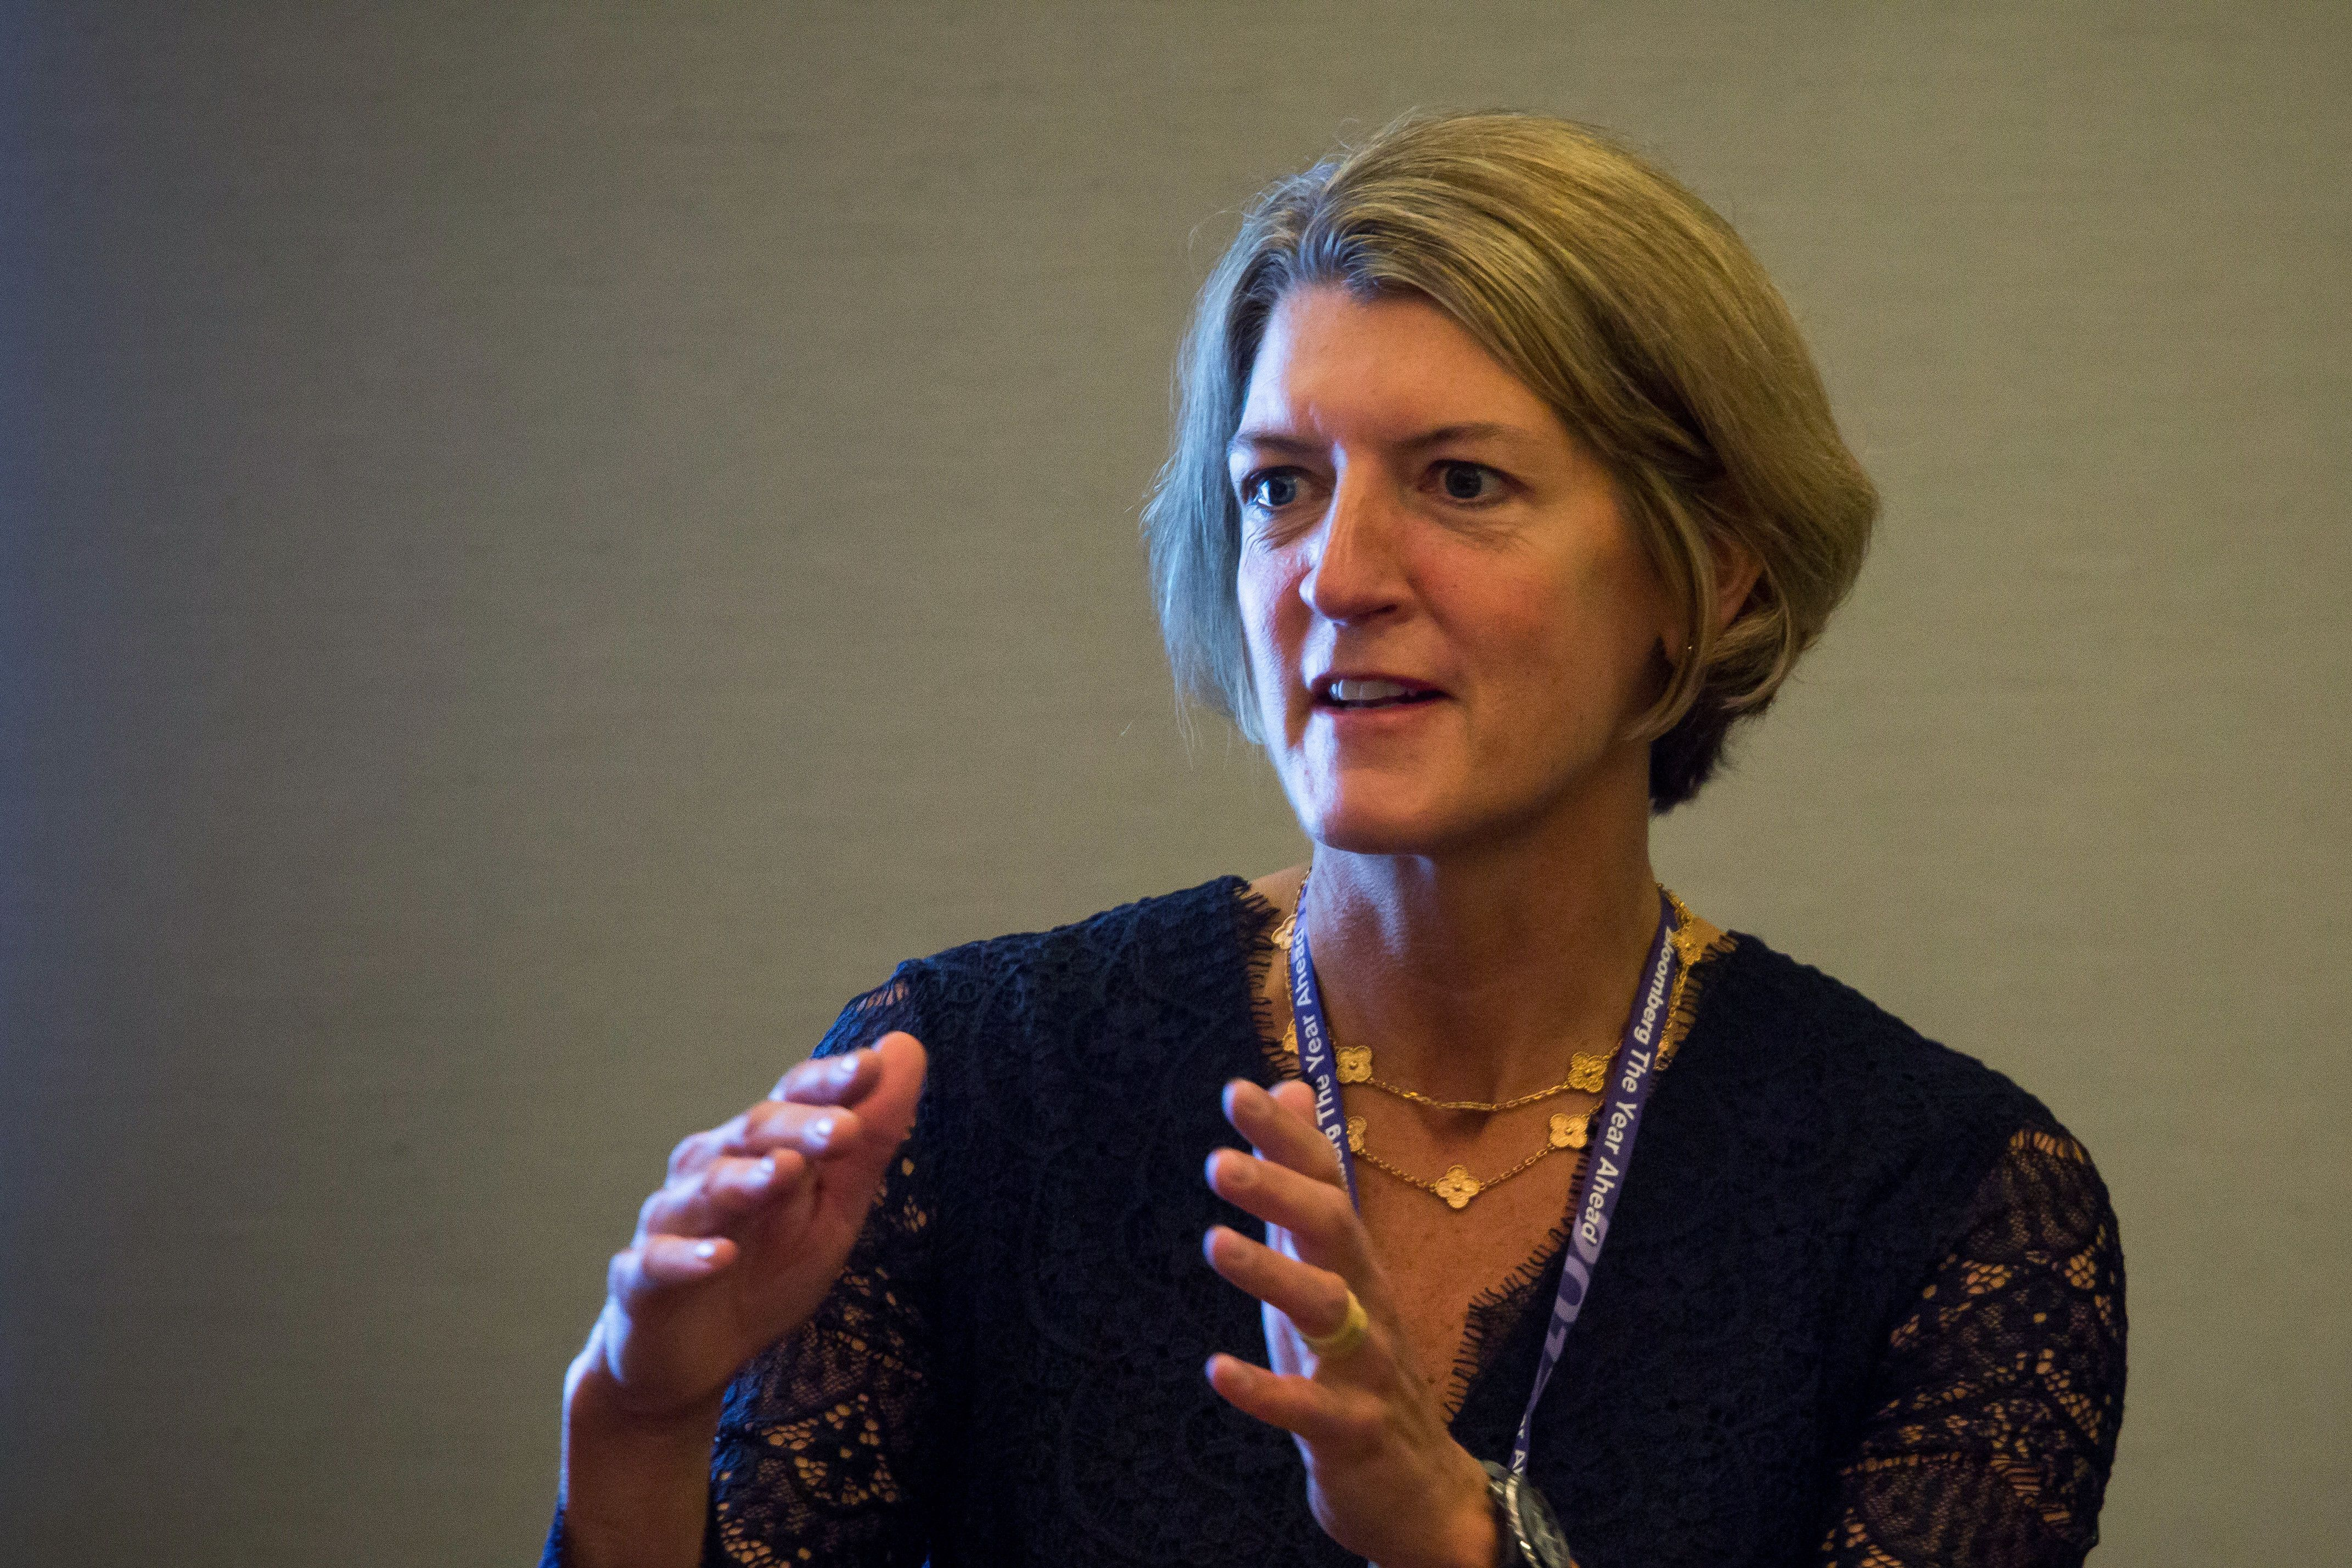 Beth Ford, group executive vice president and chief operating officer at Land O'Lakes Inc., speaks during Bloomberg's fourth-annual Year Ahead Summit in New York, U.S., on Tuesday, Oct. 25, 2016. The summit addresses the most urgent topics for 2017 and beyondhow power shifts in global politics will affect free trade and financial markets; industry-moving innovations in AI, robotics, and life sciences; the biggest investment opportunities for 2017; and how organizations are working to increase diversity, solve the skills gap, and decrease the wage gap. Photographer: Michael Nagle/Bloomberg via Getty Images